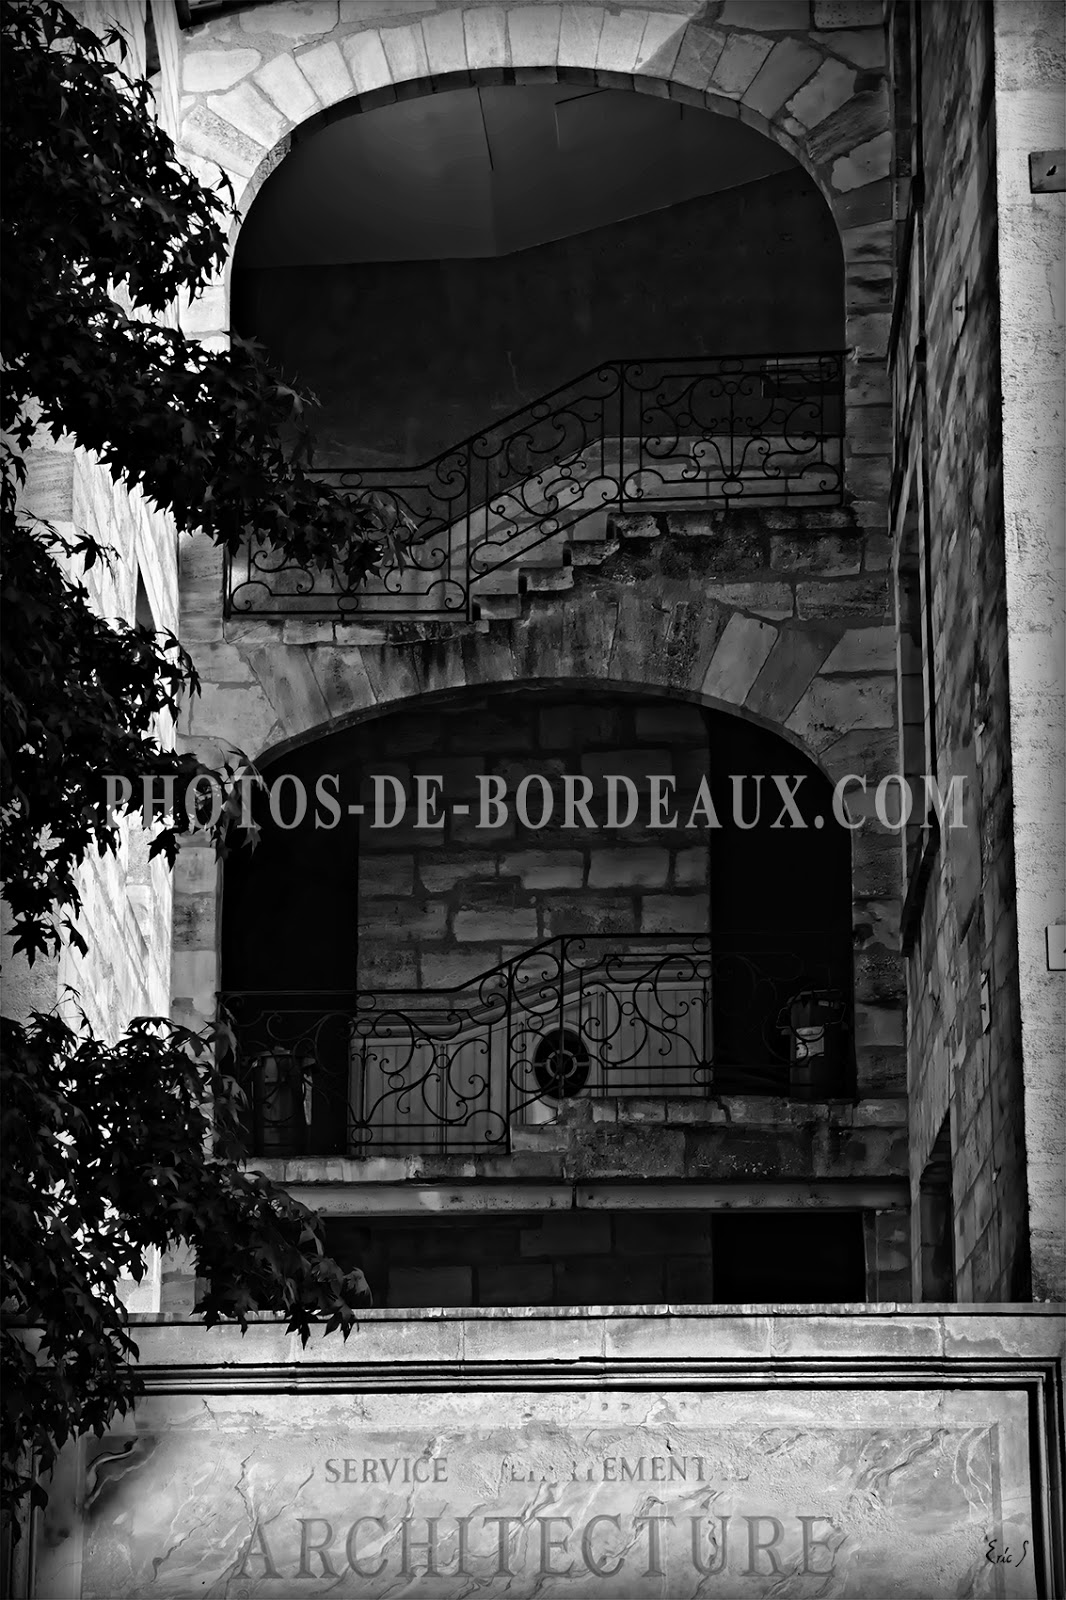 architecture dans le vieux bordeaux. Black Bedroom Furniture Sets. Home Design Ideas